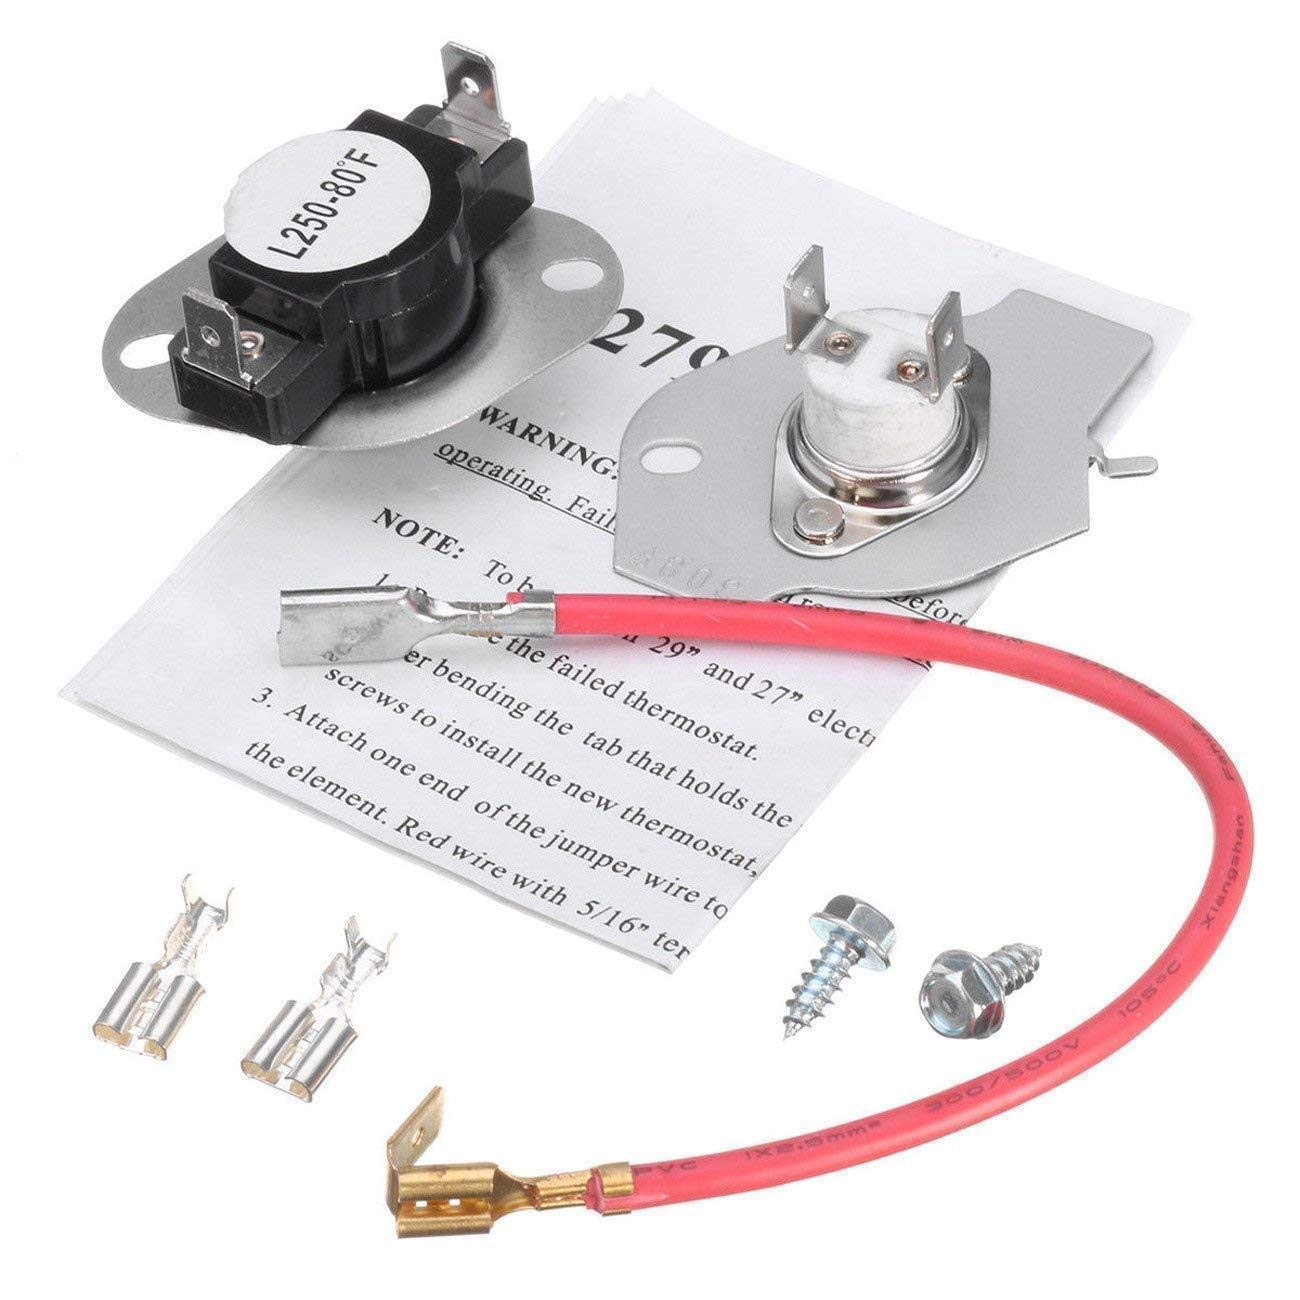 ANTOBLE 279816 Dryer Thermostat Kit Replacement for Whirlpool & Kenmore Dryer 3399848 3977393 AP3094244 …